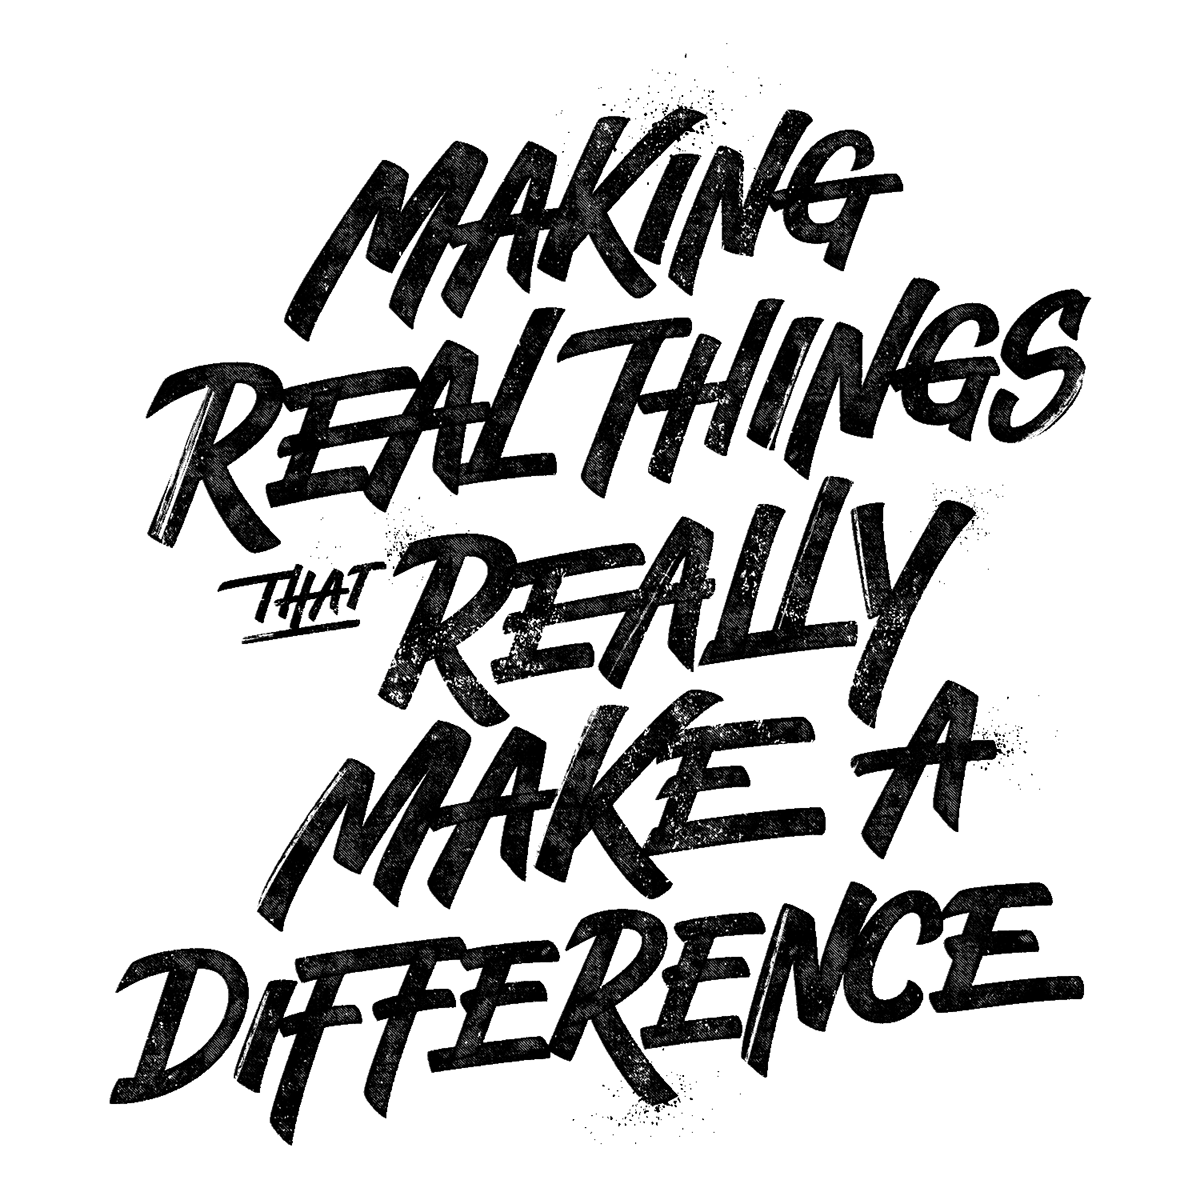 Typographic drawing creative. Lettering phrases for tuthill